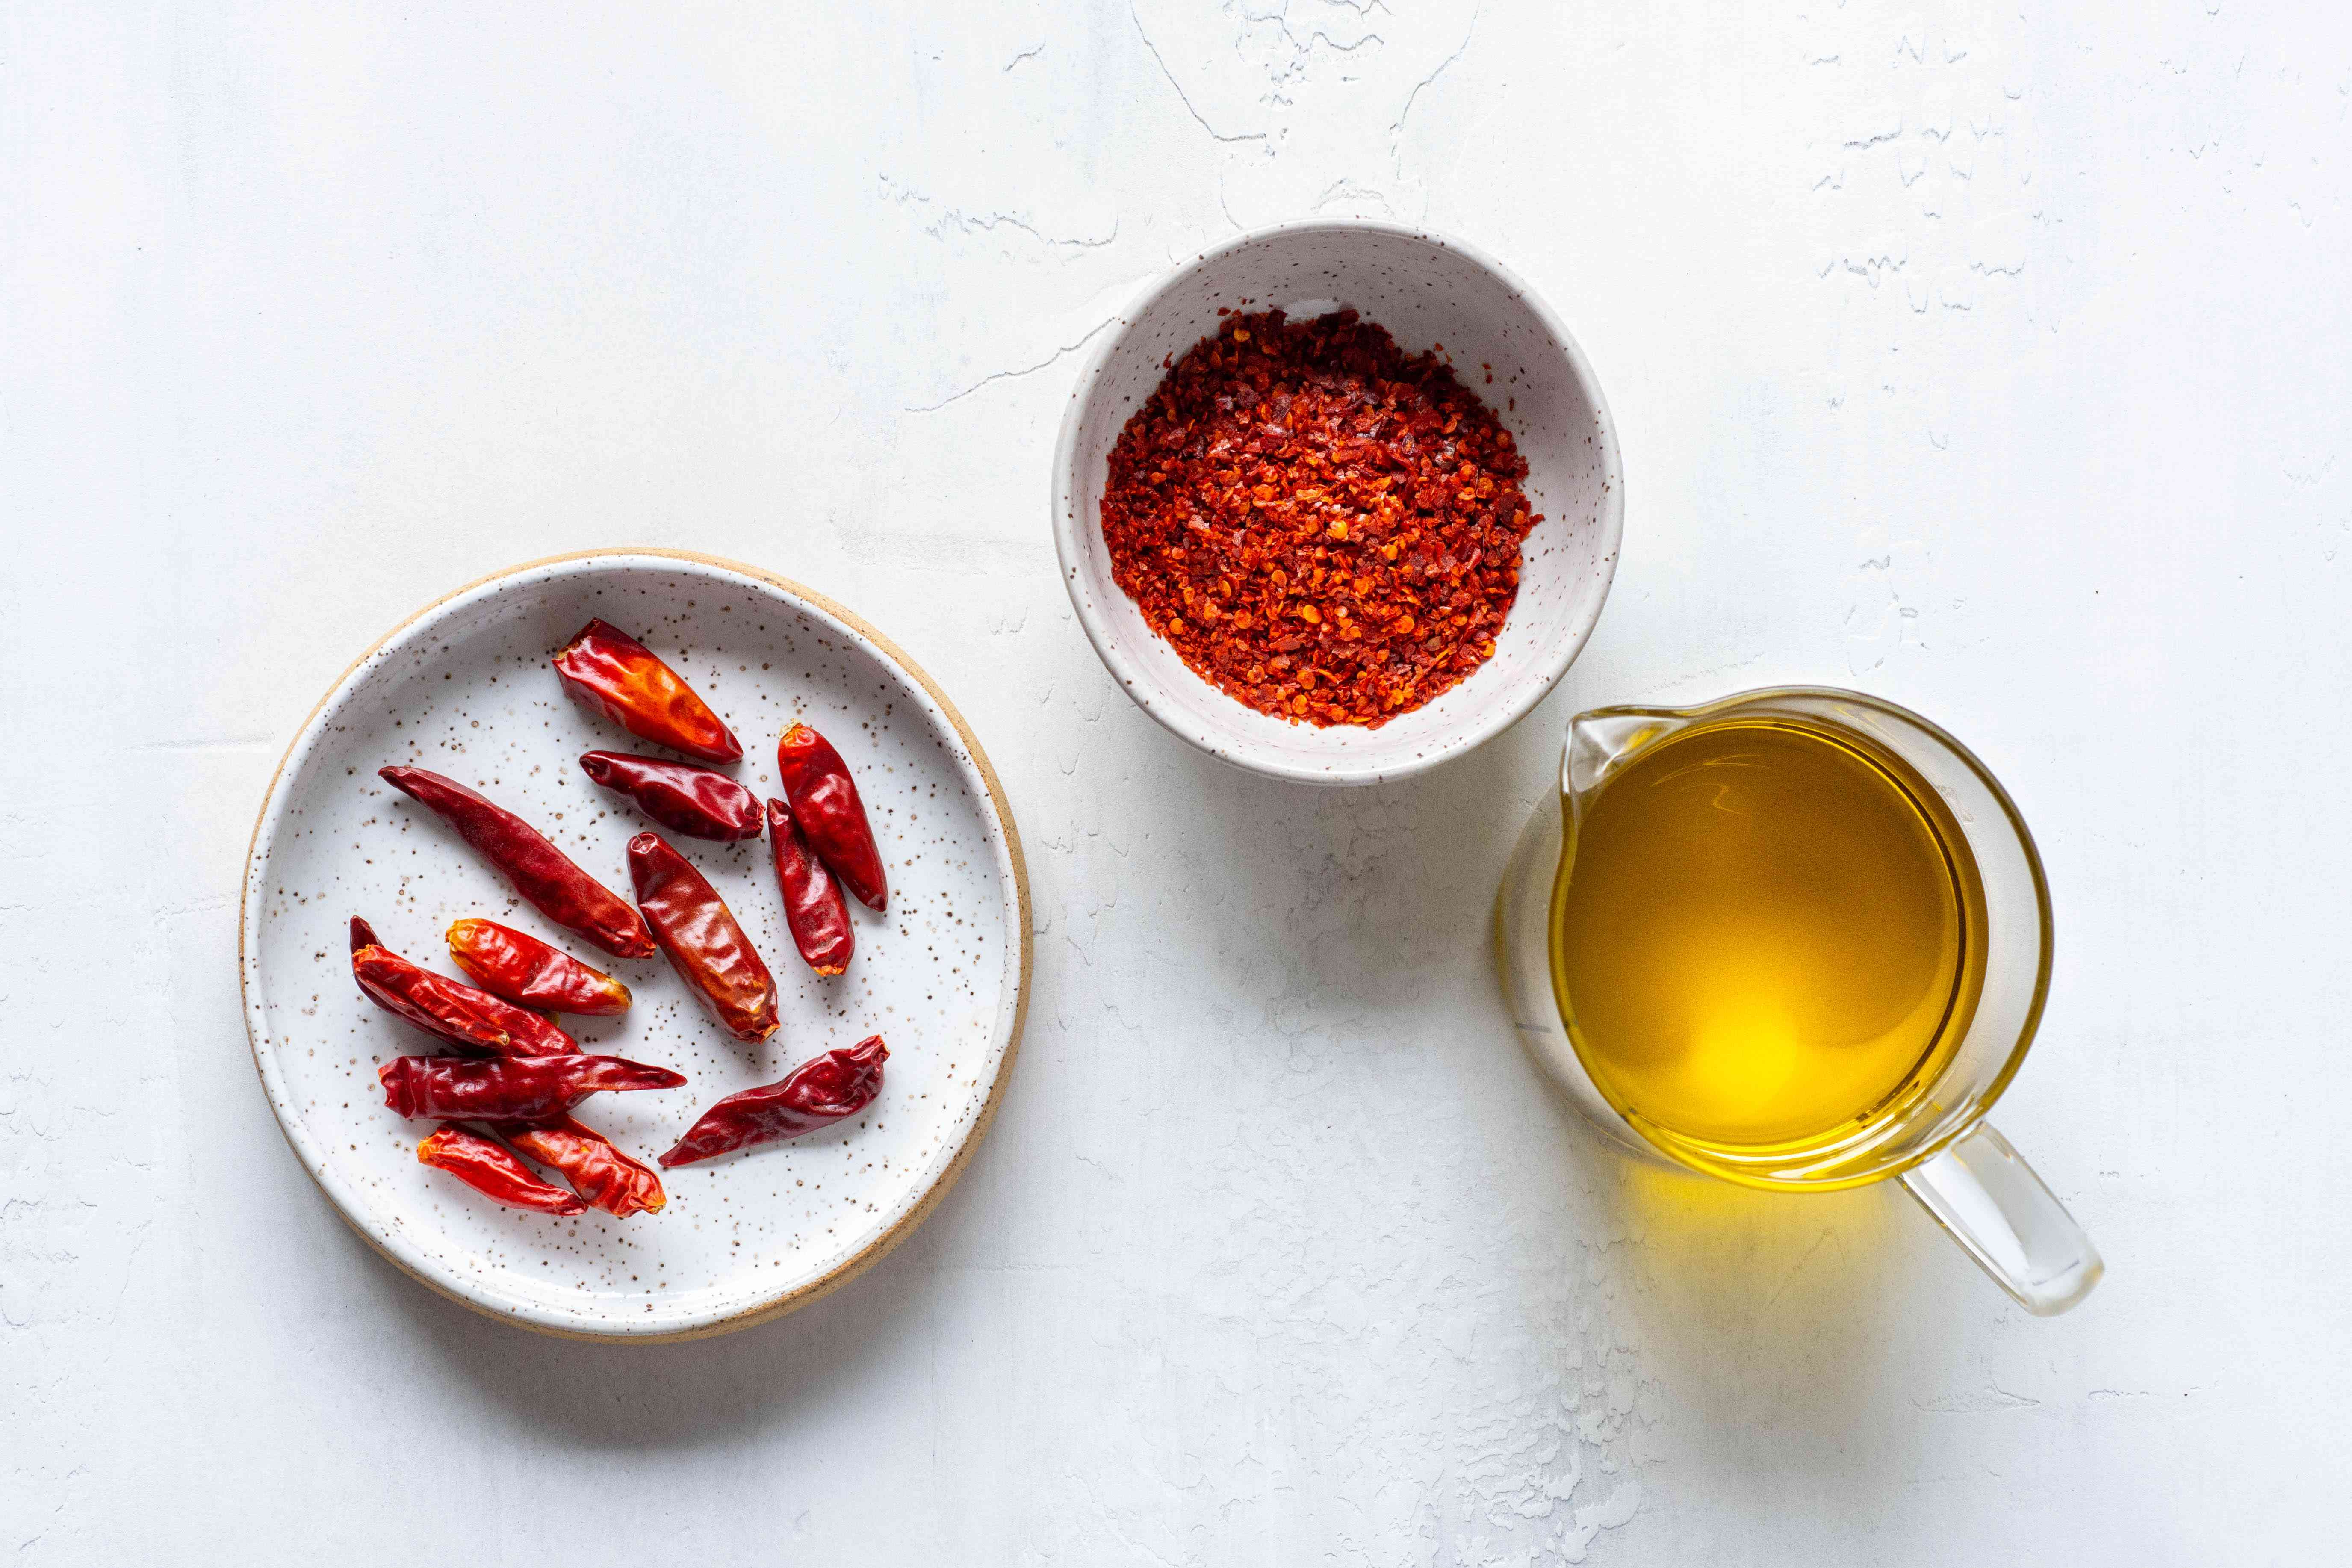 Chile Oil ingredients, olive oil and red chile peppers